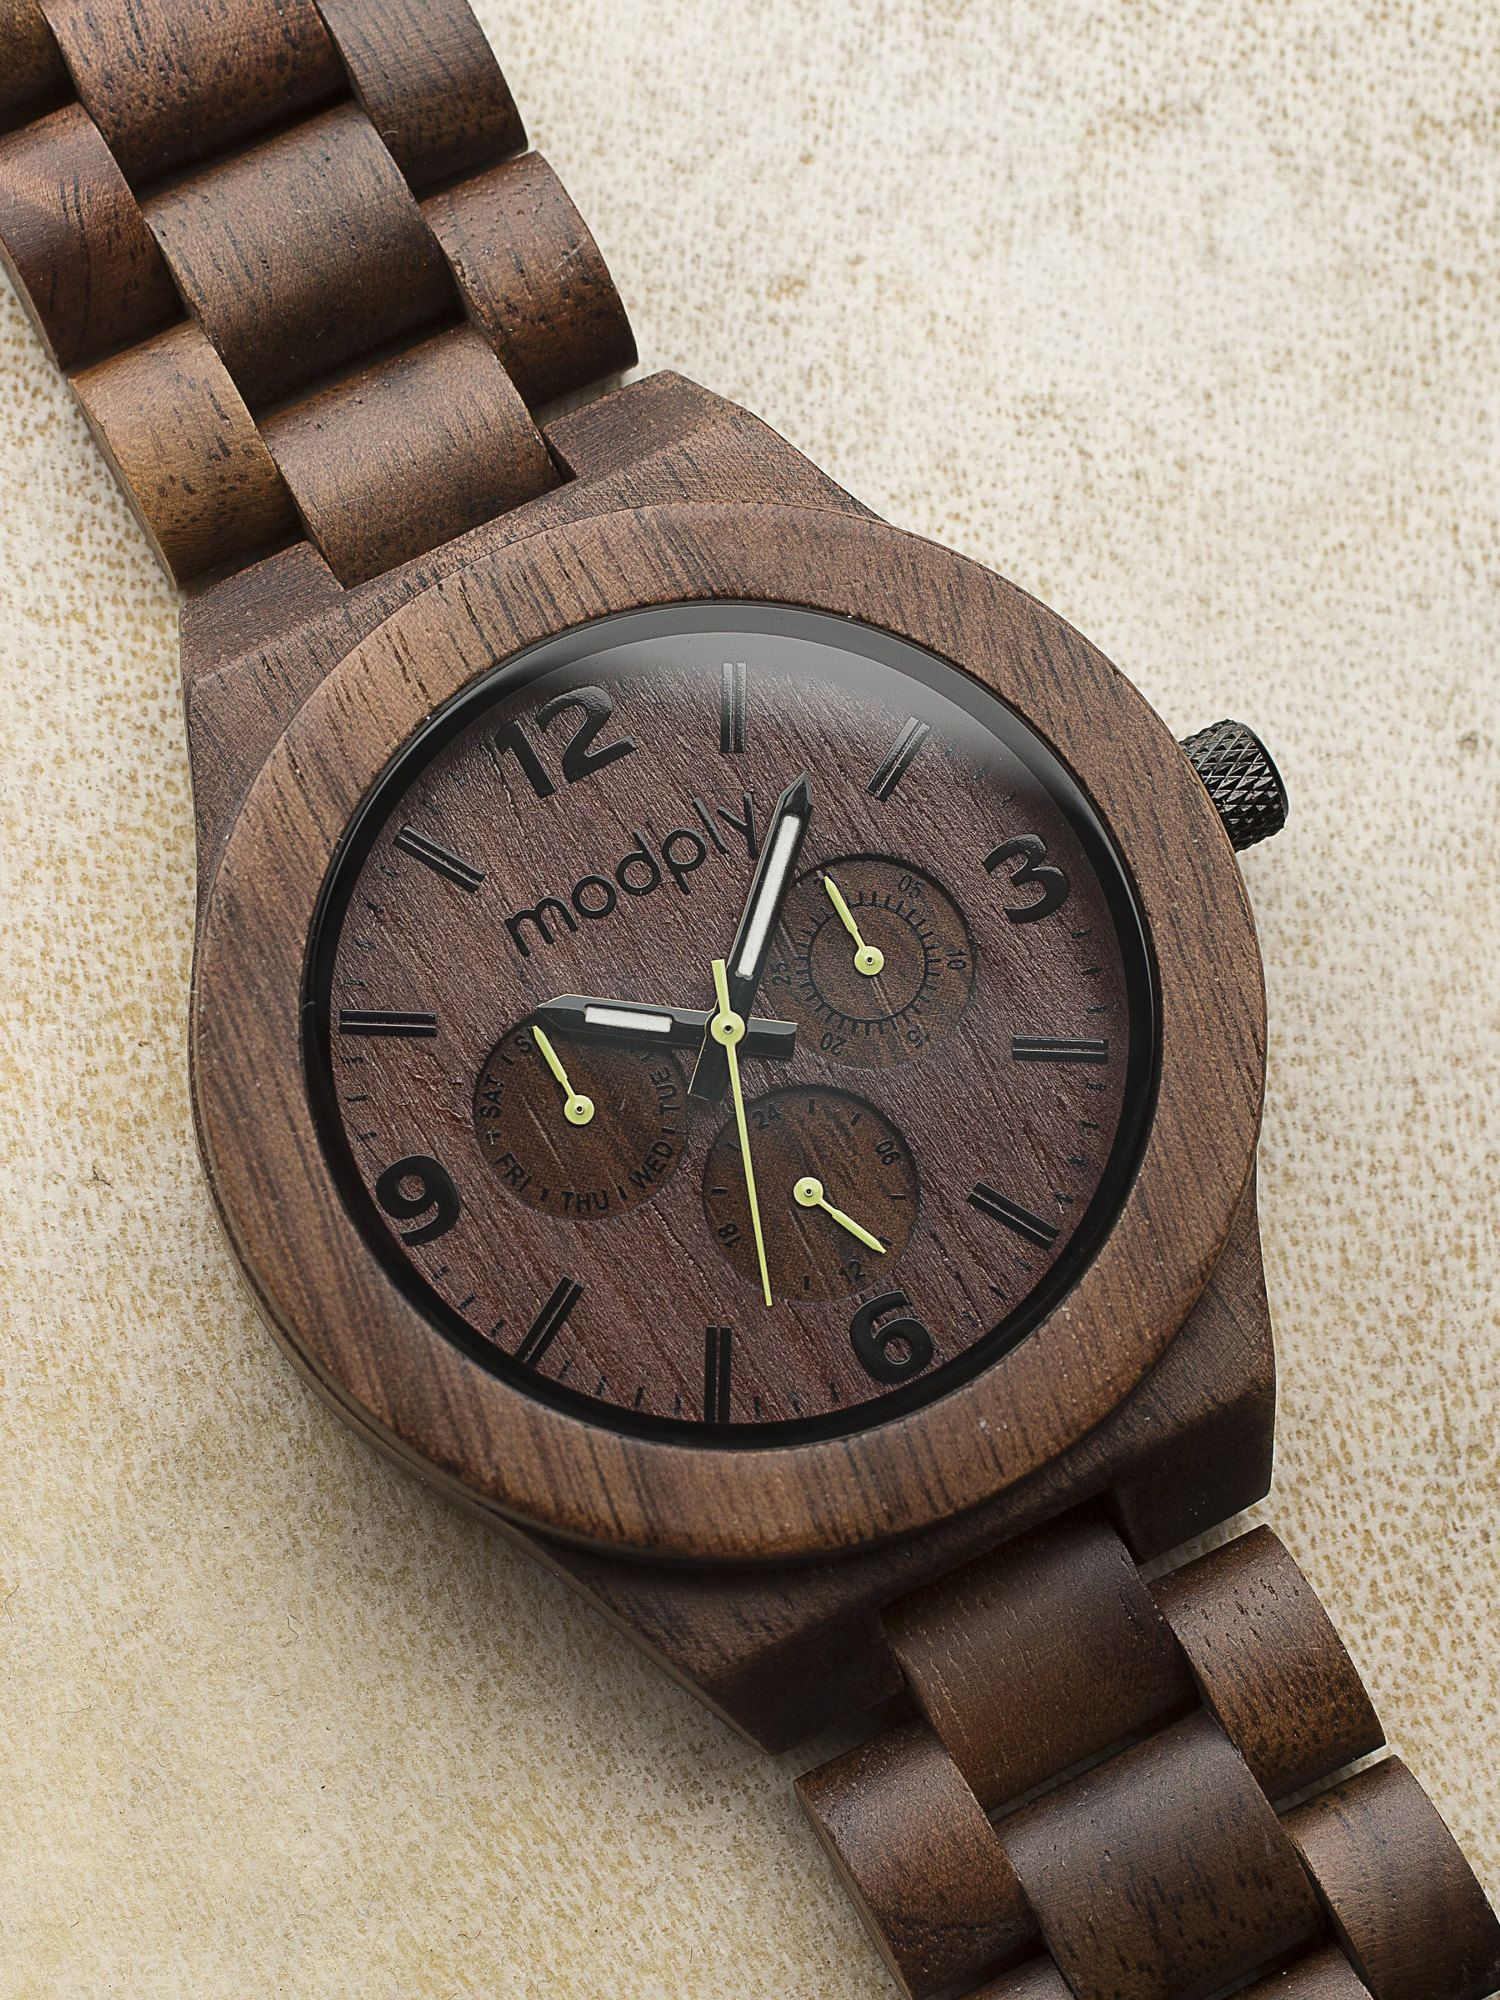 Father S Day Gift Engraved Walnut Wood Watch Fast Shipping Graduation Gift For Him 5th Annivers In 2020 Mens Gift Watch Best Watches For Men Vintage Watches For Men